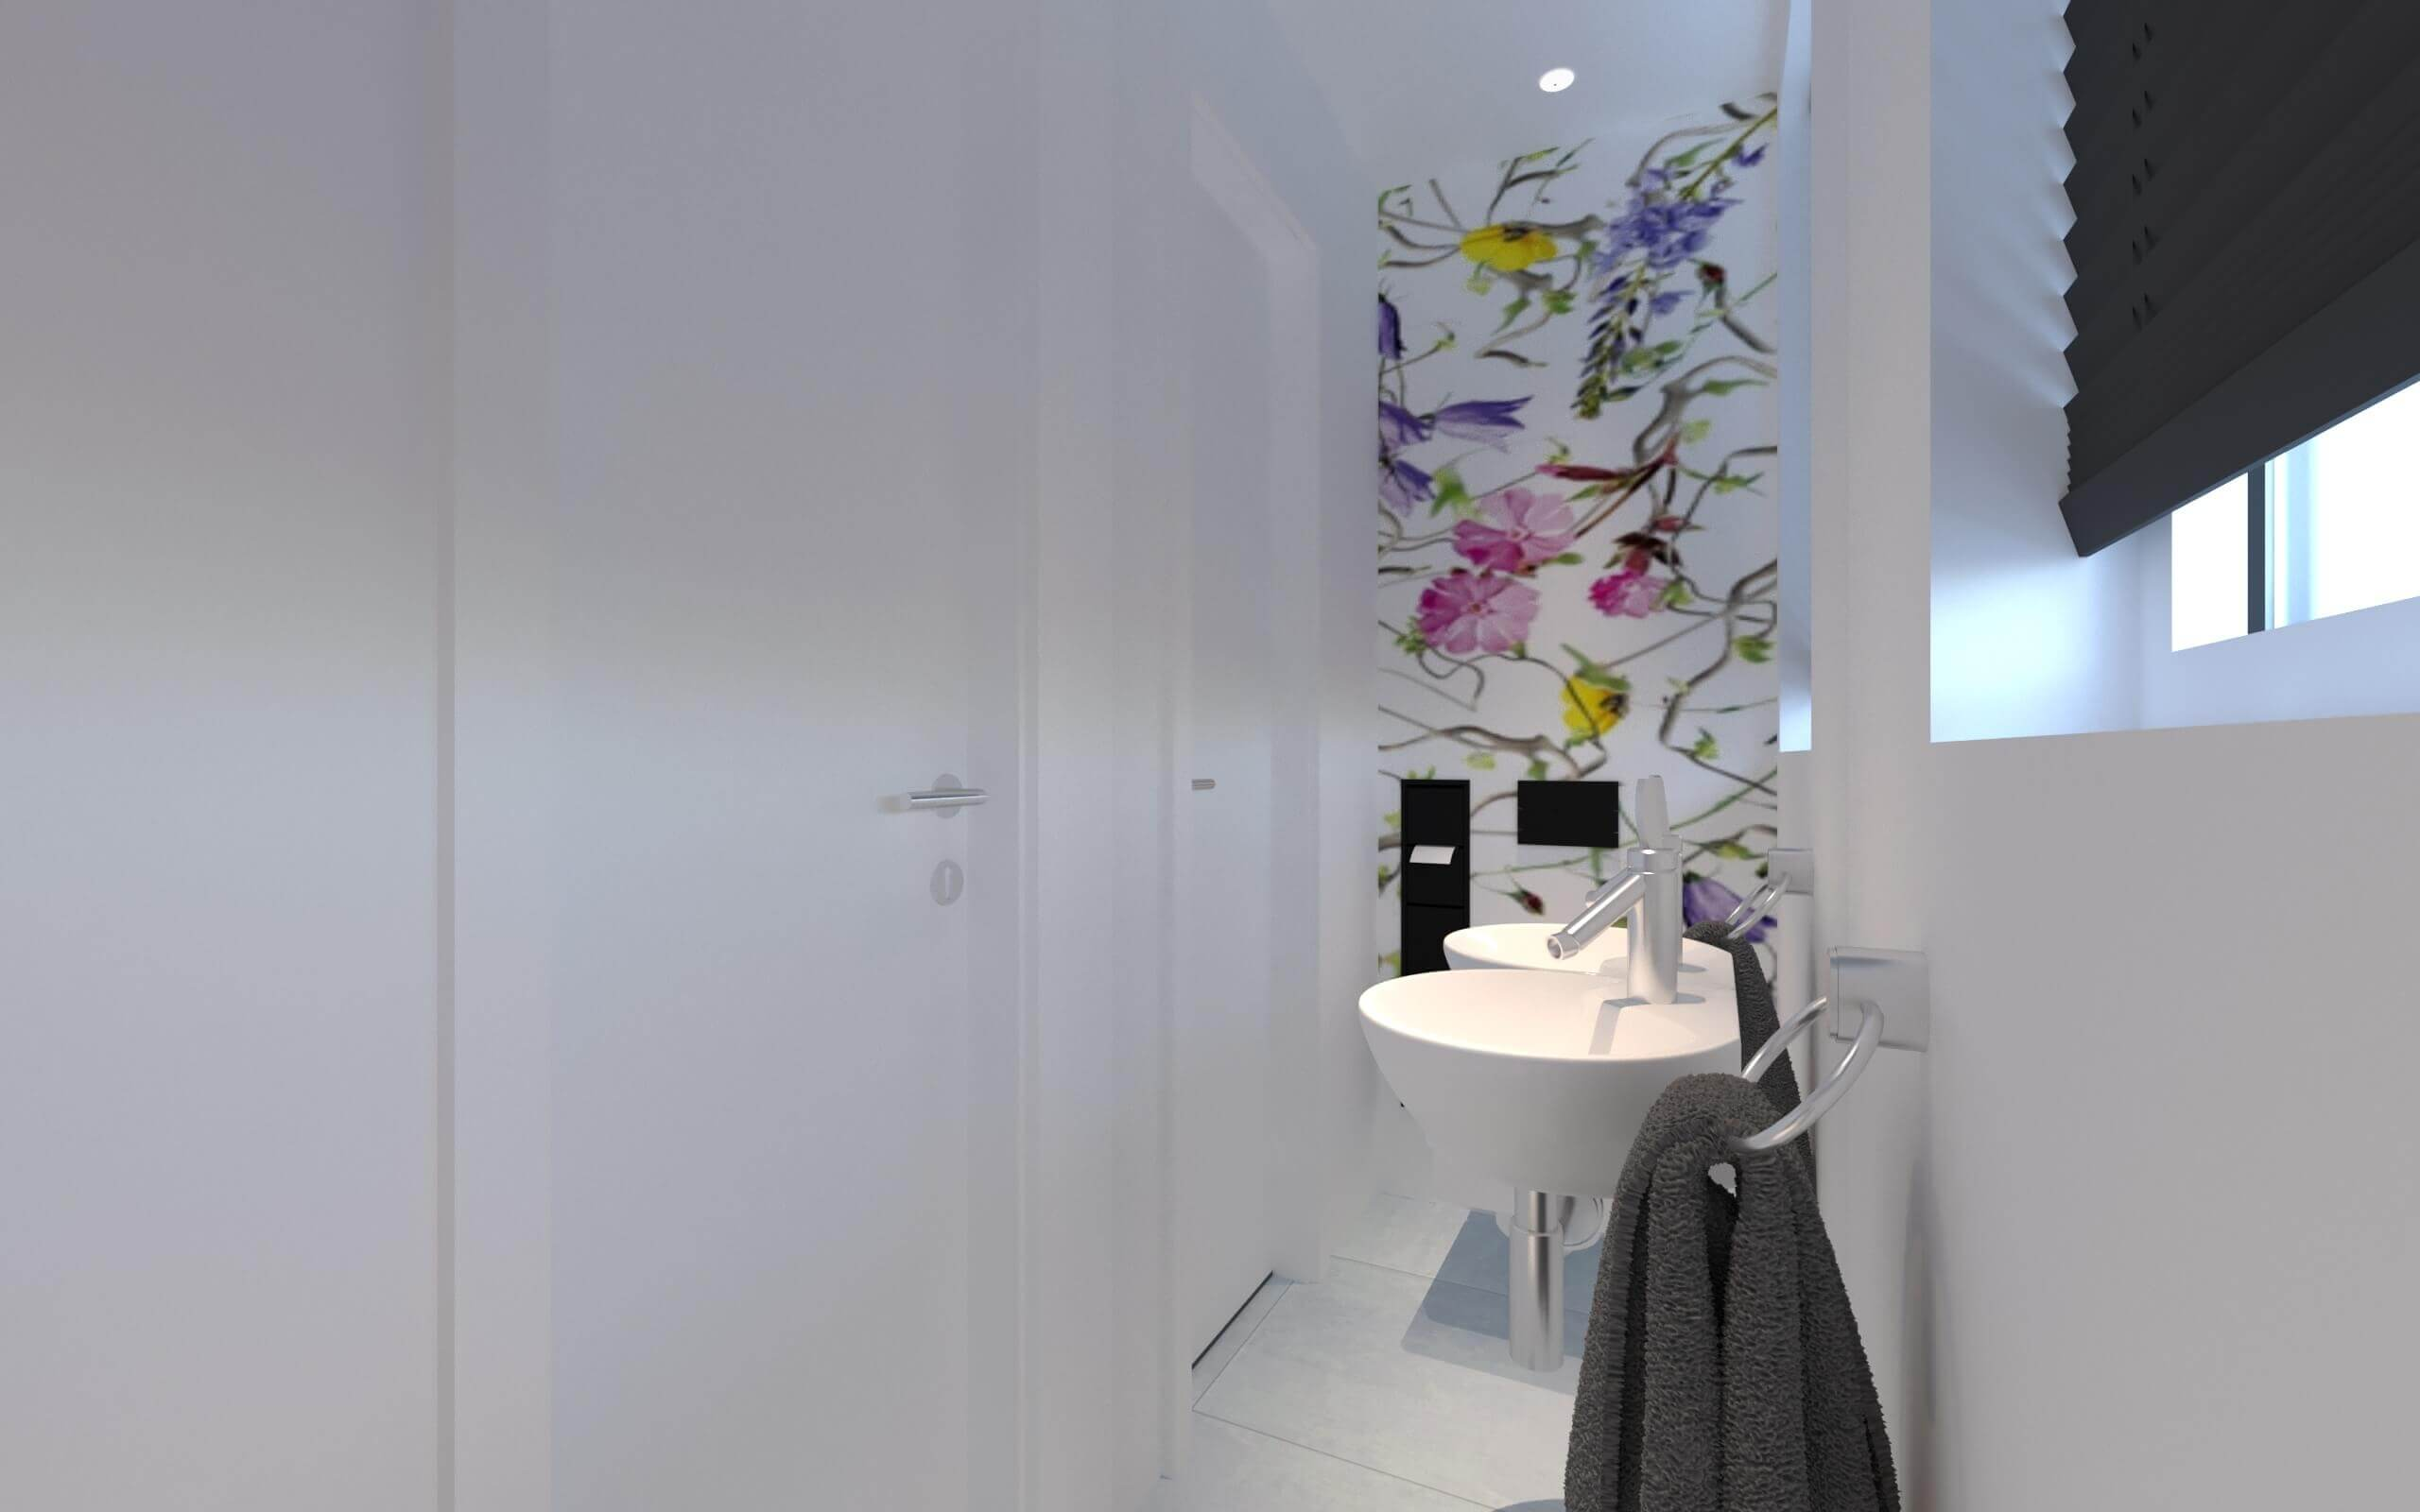 Badplanung Forum Pop Up My Bathroom Der Guide Zum Trendforum 2019